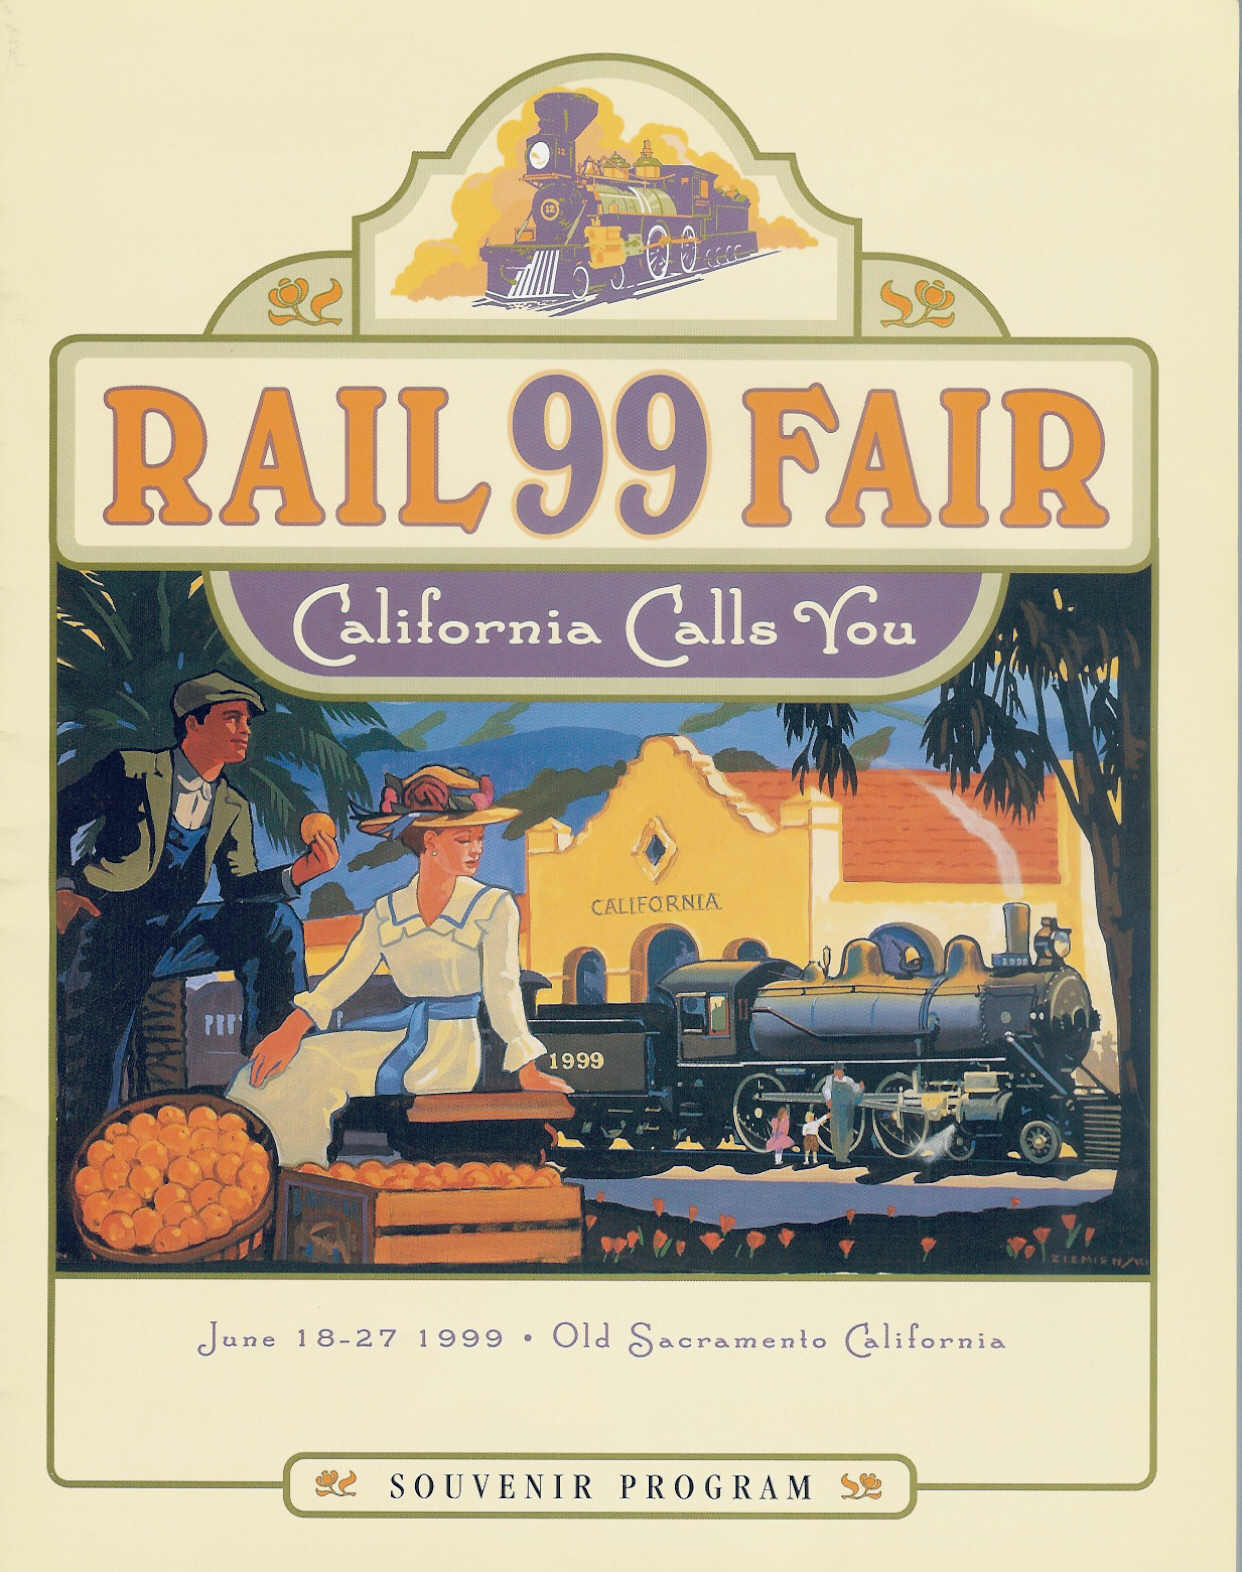 RailFair99 ©1999 California State Railroad Museum & David Ziemienski